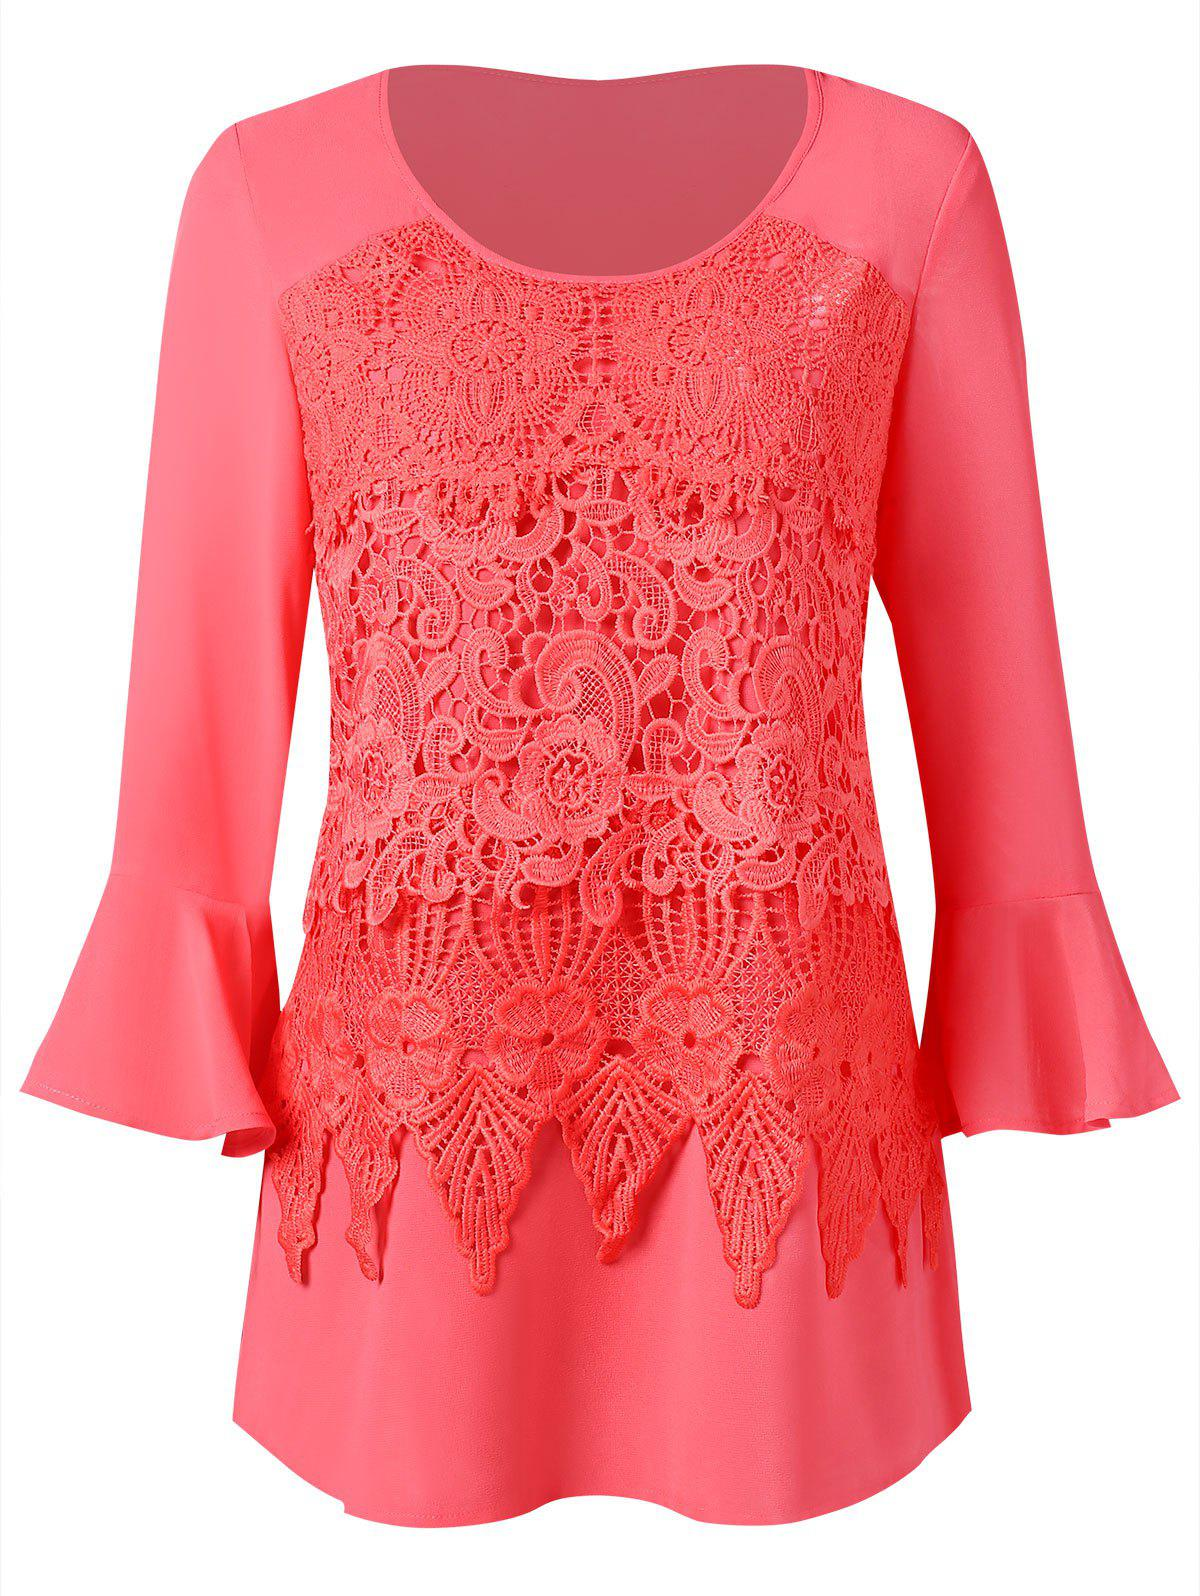 Long Sleeve Top with Lace Panel - multicolor S